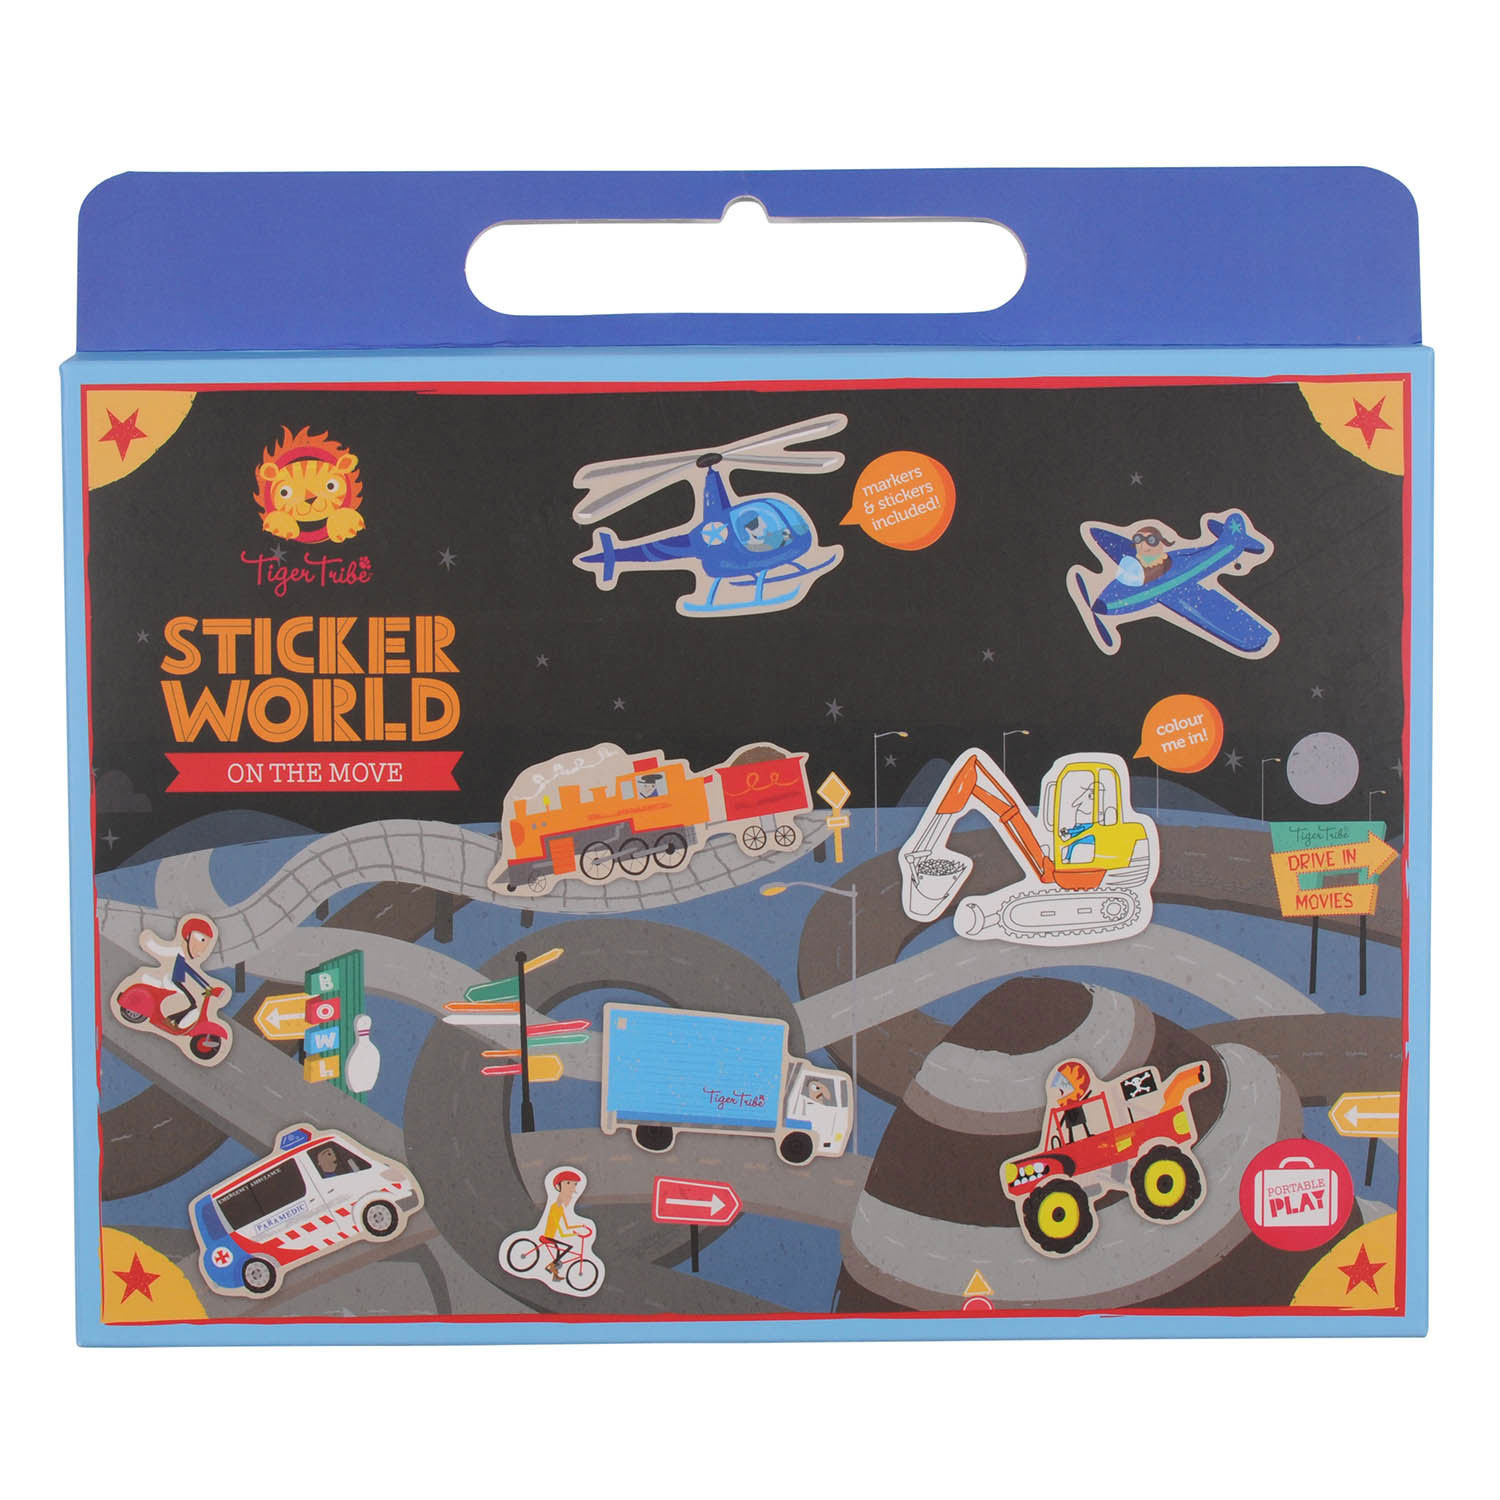 Sticker World - On the Move by Tiger Tribe